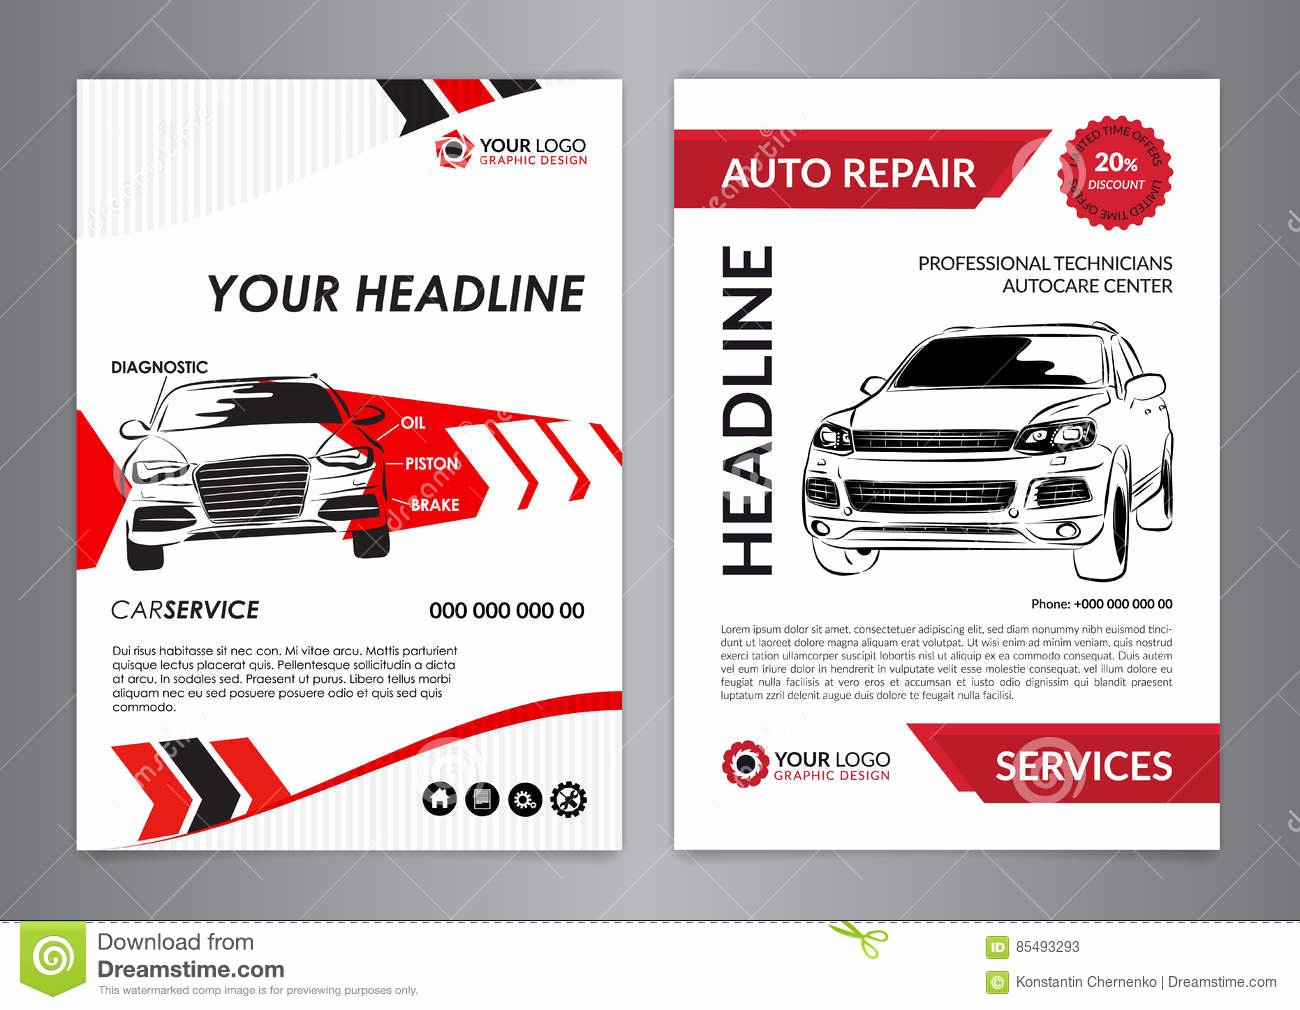 Auto Repair Template Free Fresh Set A4 Auto Repair Business Layout Templates Automobile